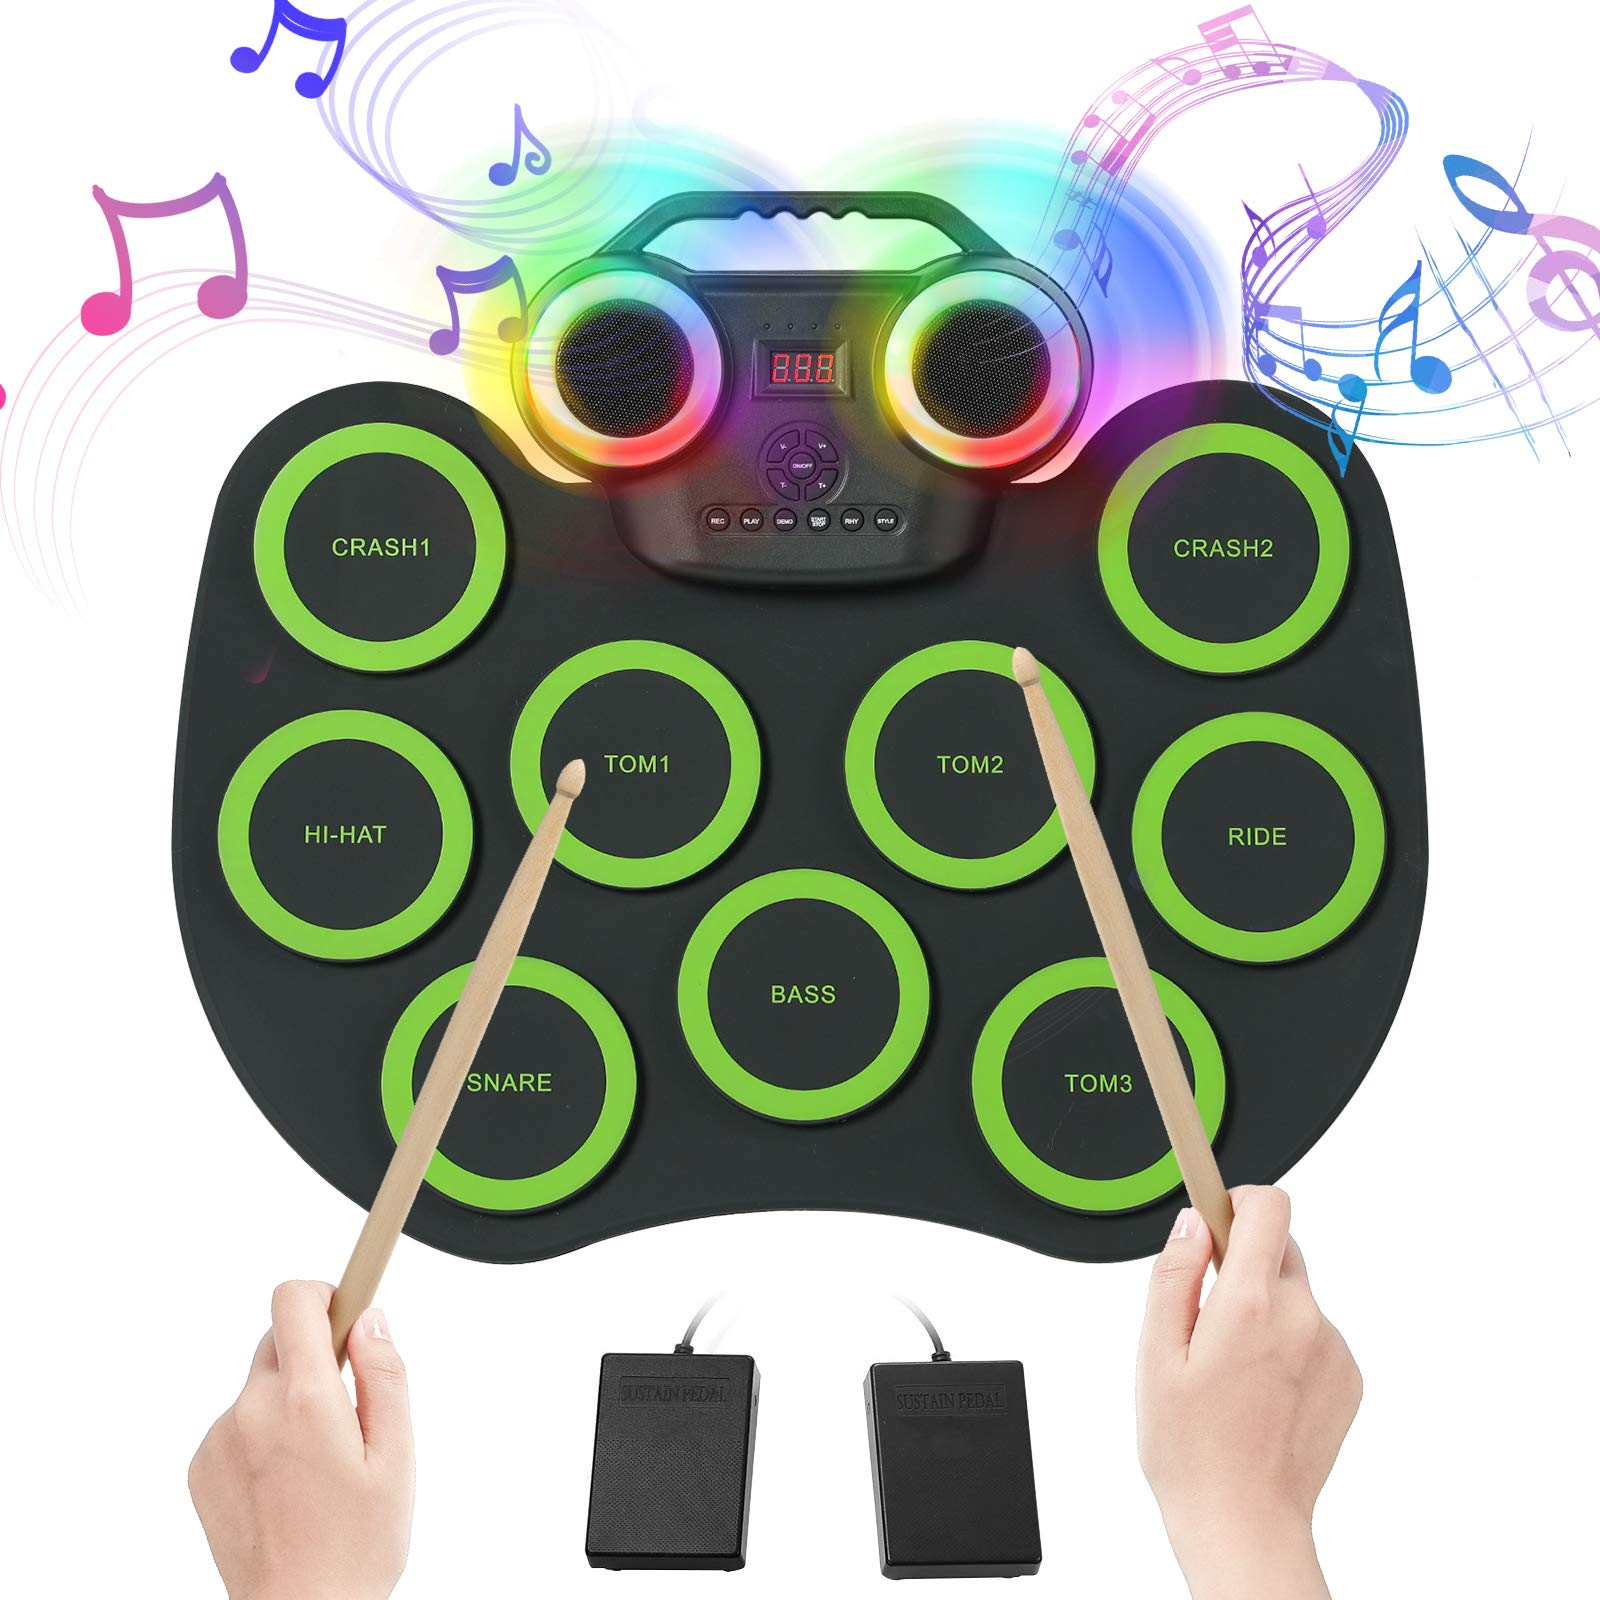 Electronic Drum Pads for kids, 9 Pads Roll-up Electronic Drum Set with Colorful Lights for 8h Playing with Built-in Speaker, Wooden Drum Sticks, 2 Pedals, Rechargeable Drum Kit